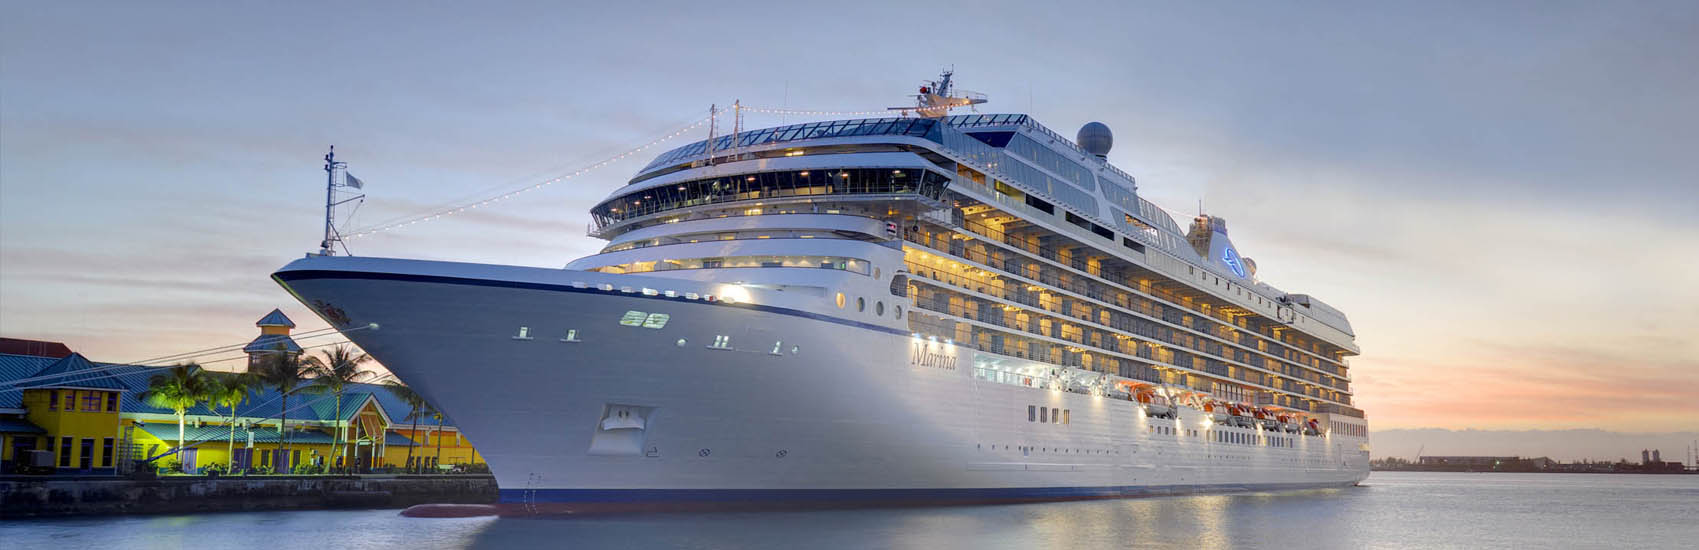 Canadian Residents Save 10% with Oceania Cruises 3